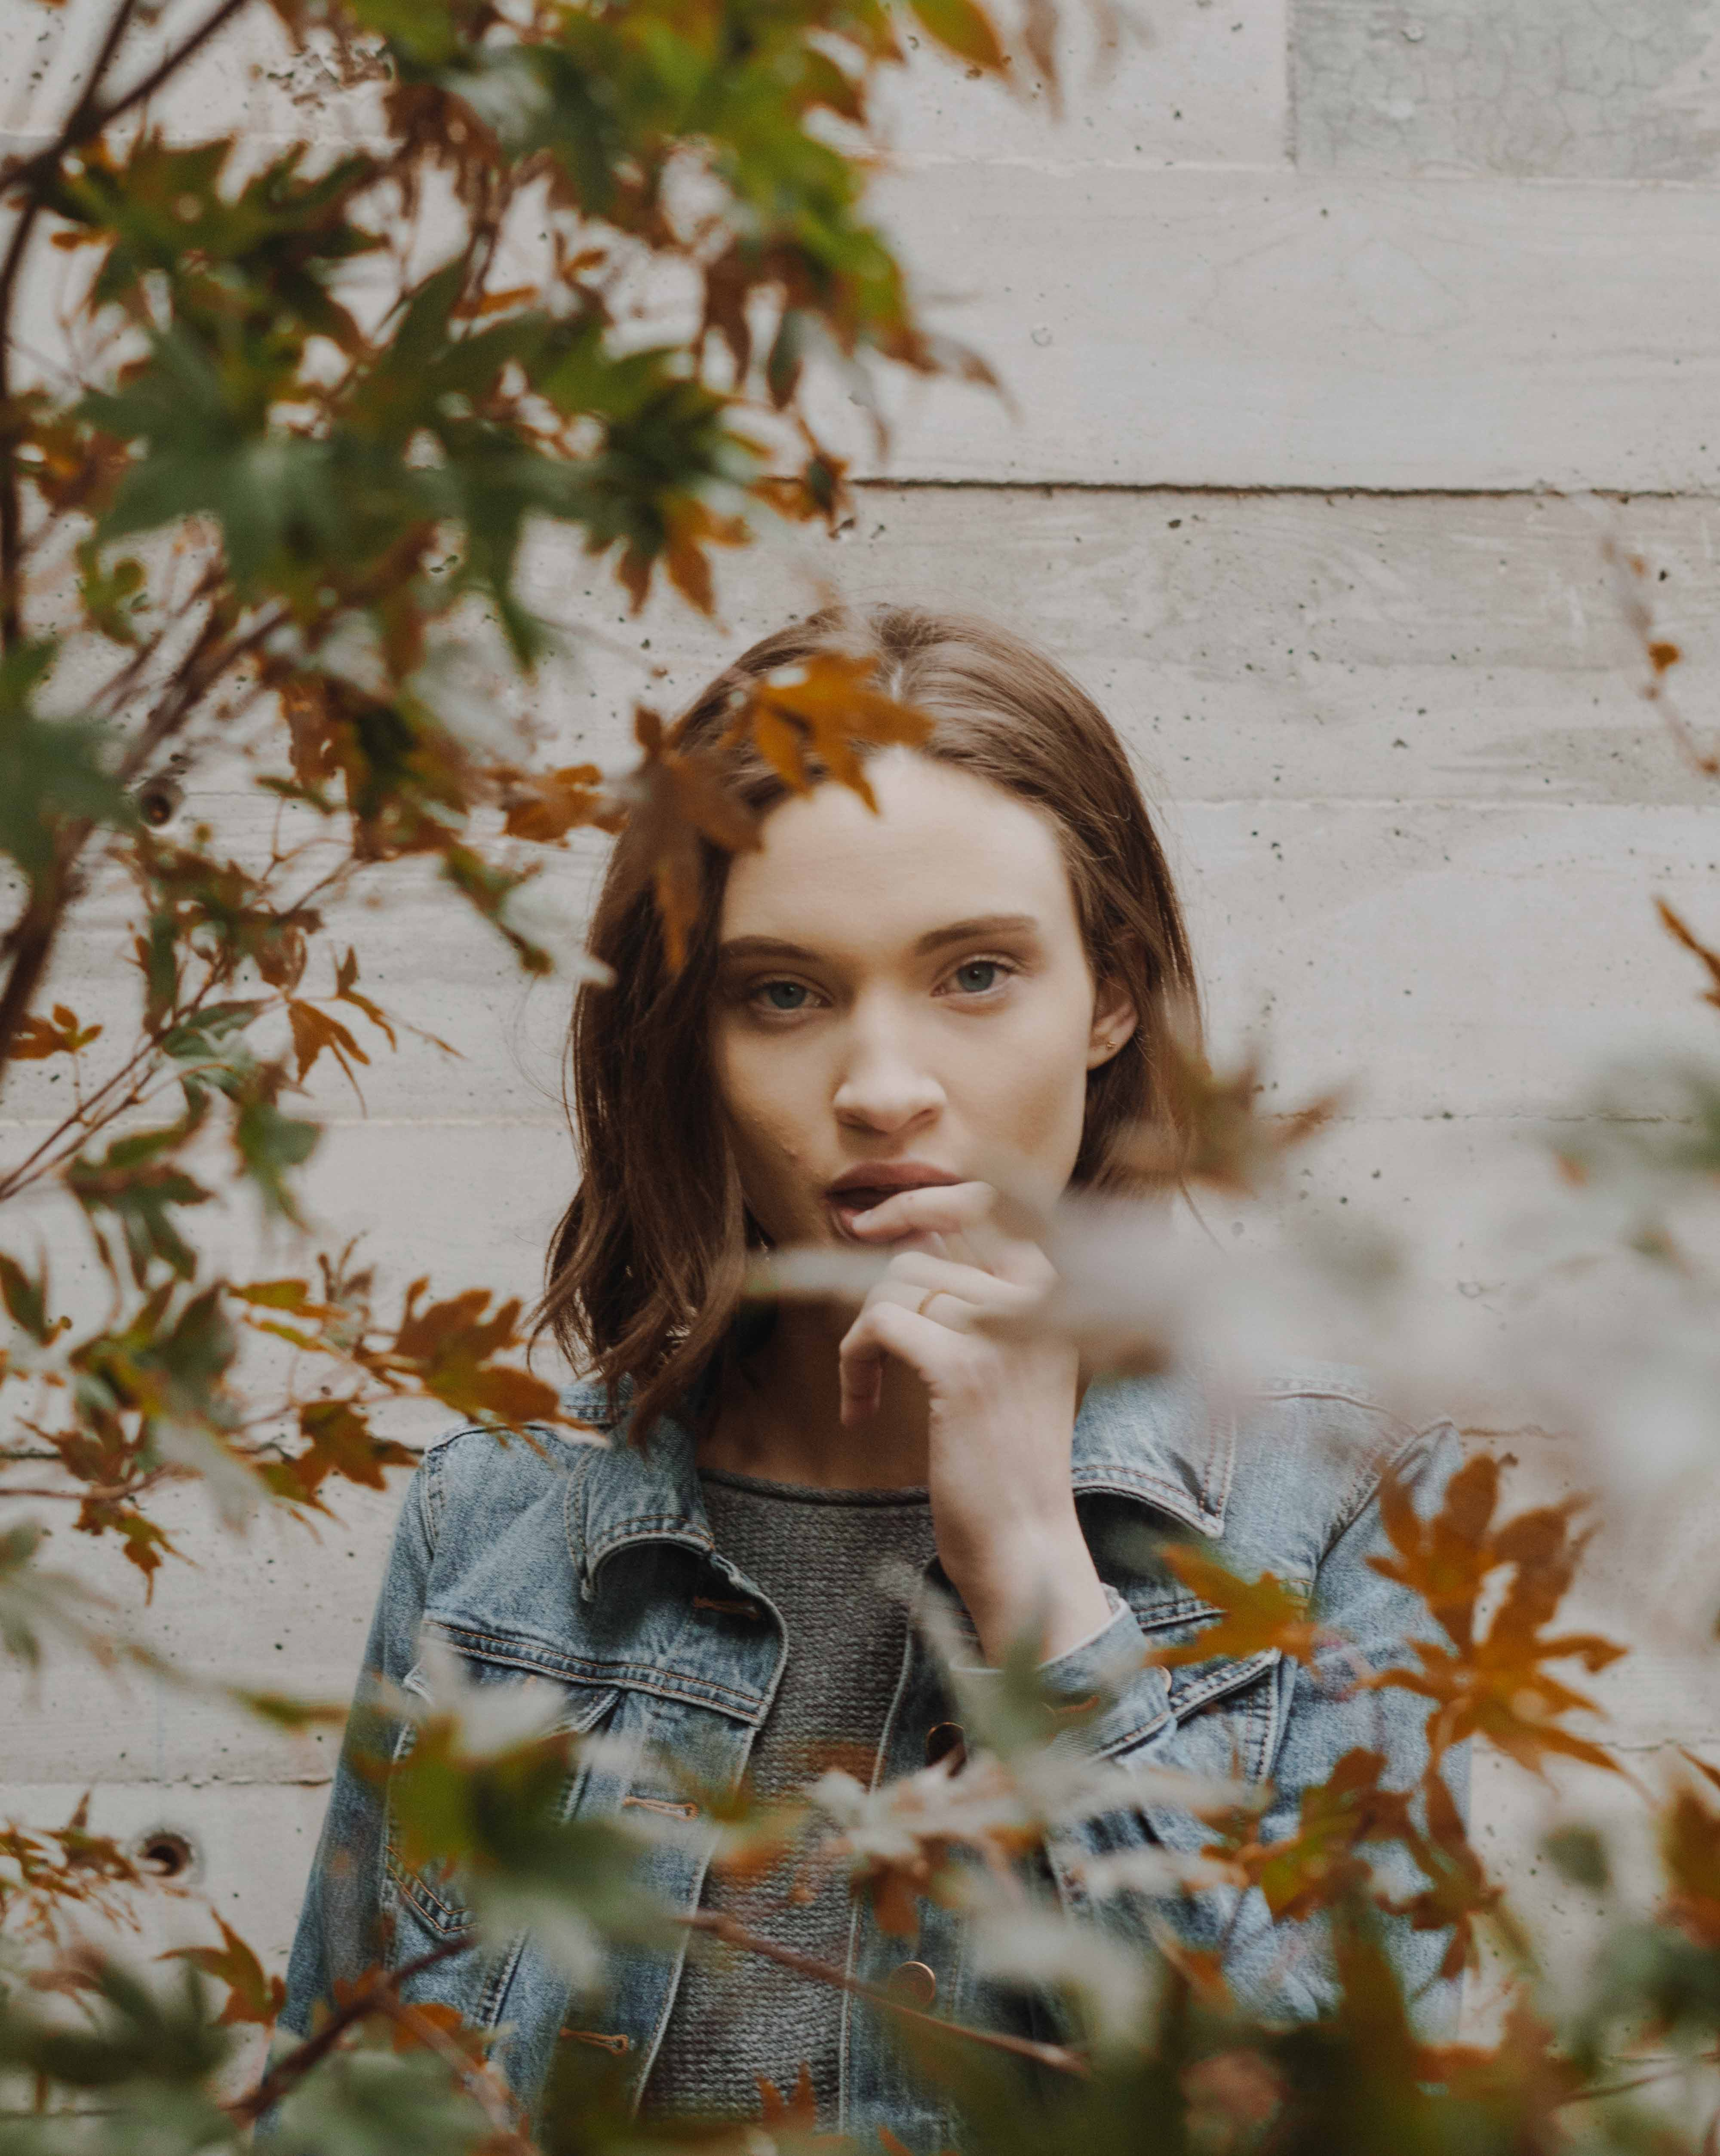 woman wearing blue denim button-up collared jacket holding lip behind brick wall in front of plants